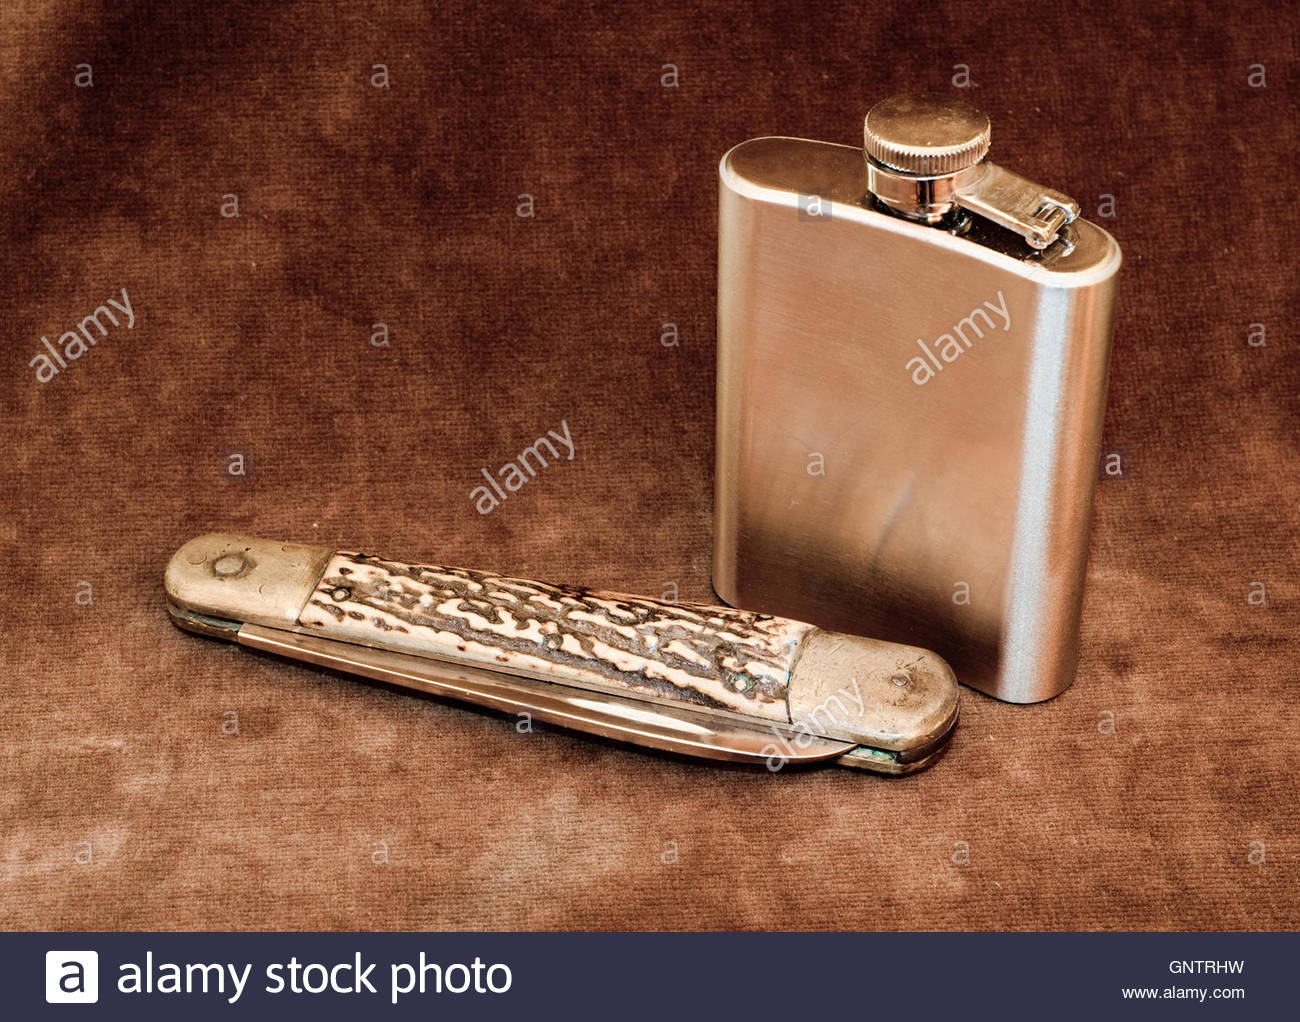 Pocket Knife and Hip Flask - Stock Image